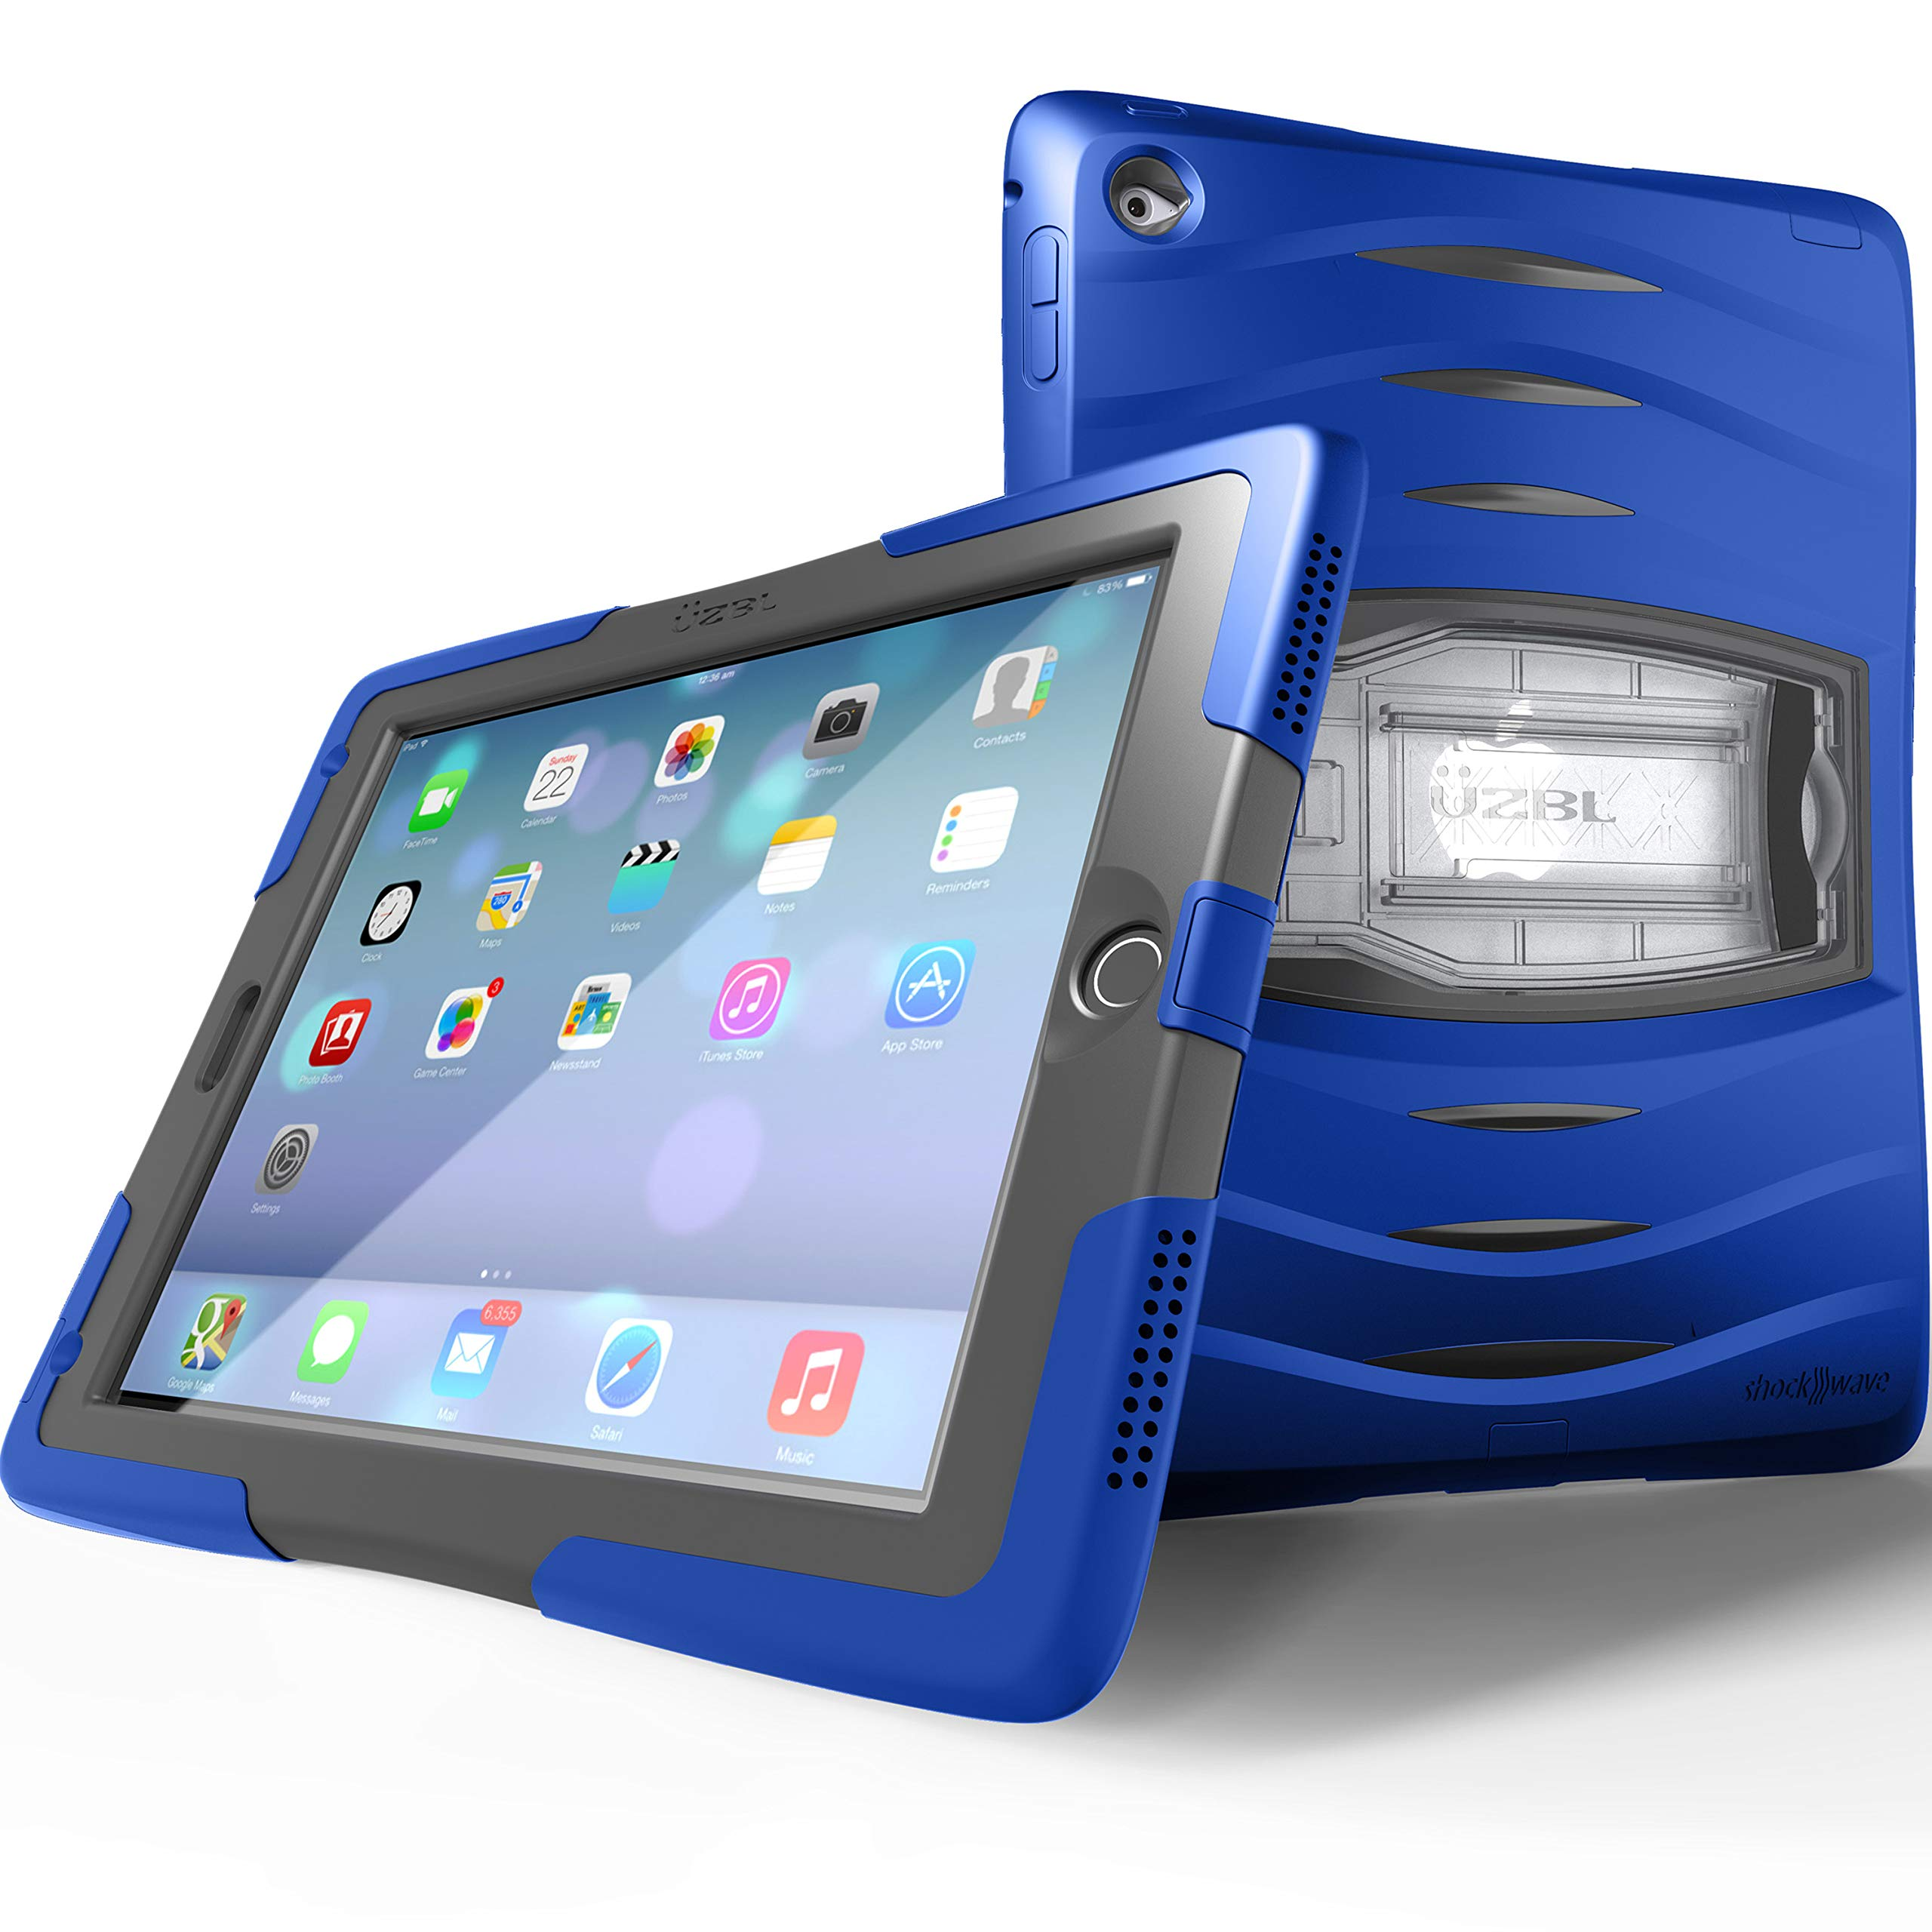 UZBL Case for iPad 9.7 6th Generation / 5th Generation, ShockWave Heavy Duty Rugged Case with Screen Protector and Removable Kickstand, Blue